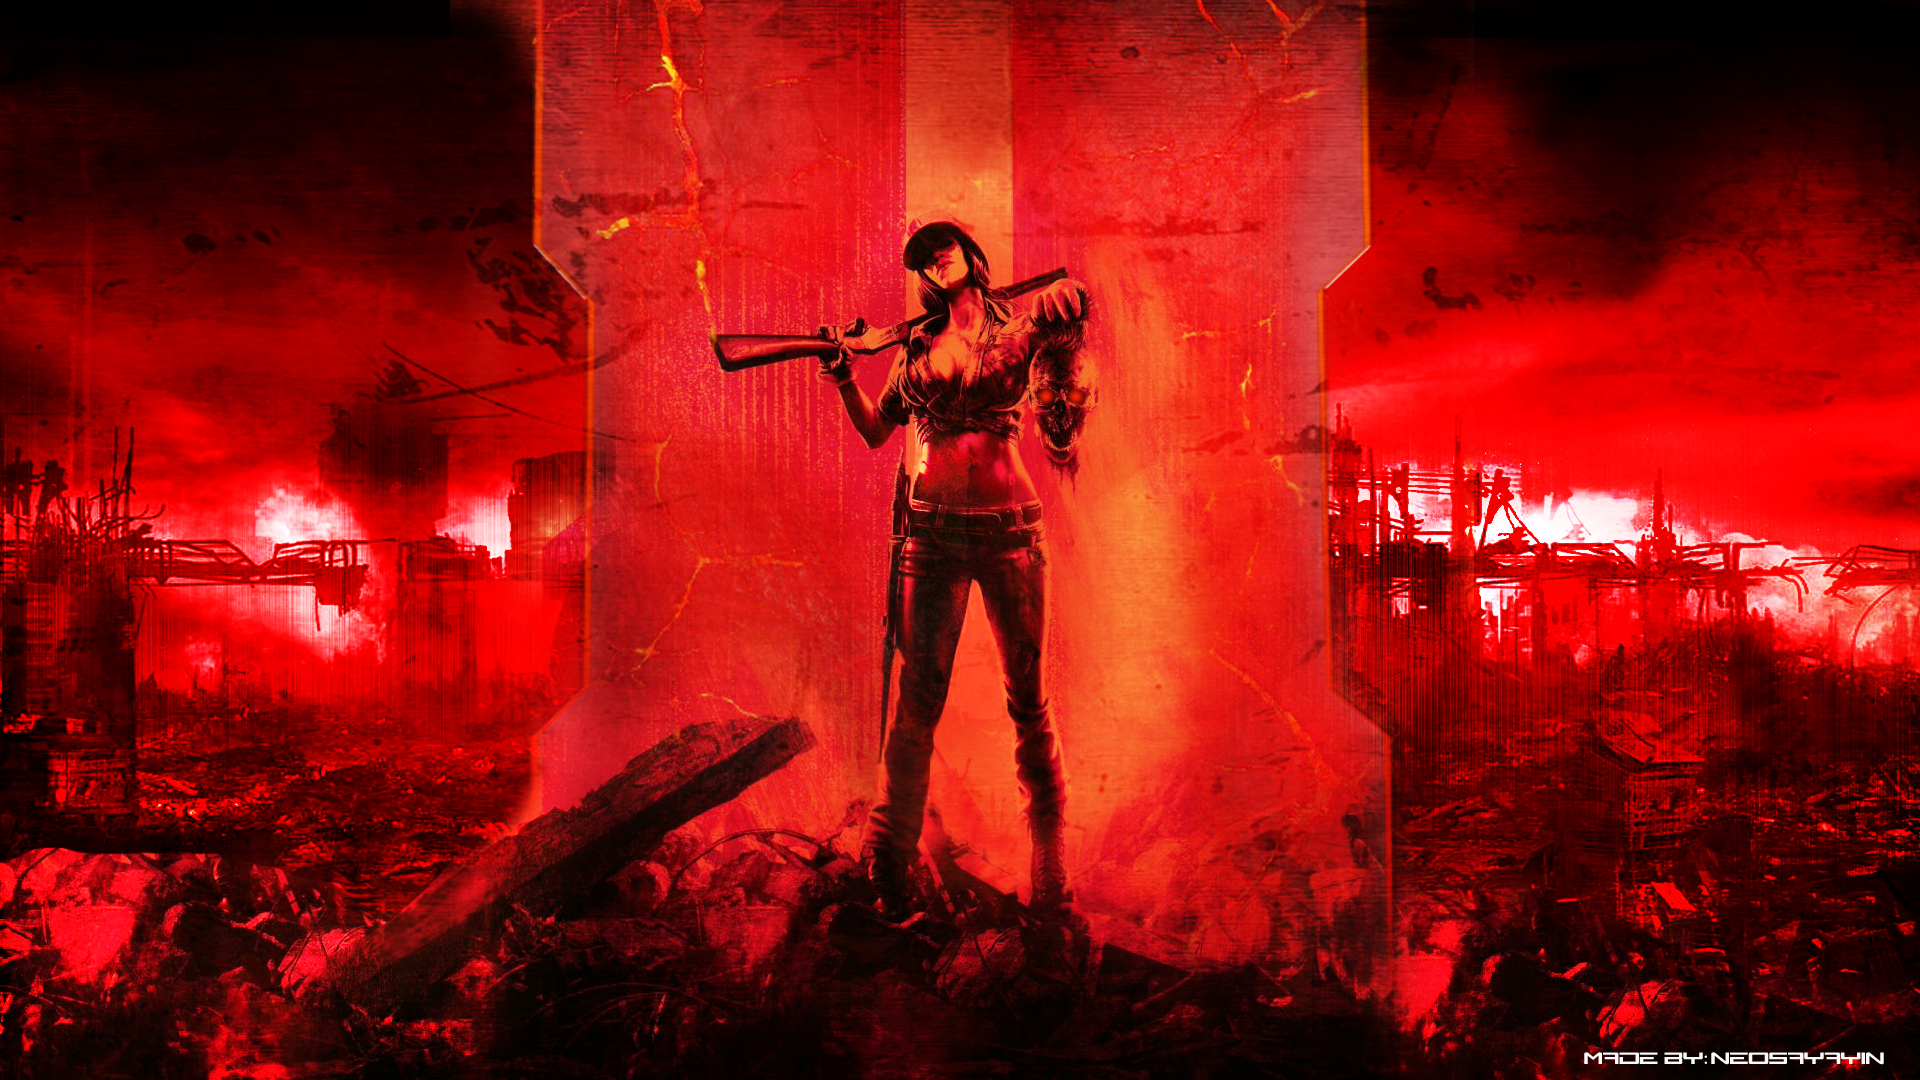 image - call of duty black ops 2 zombies wallpaperneosayayin